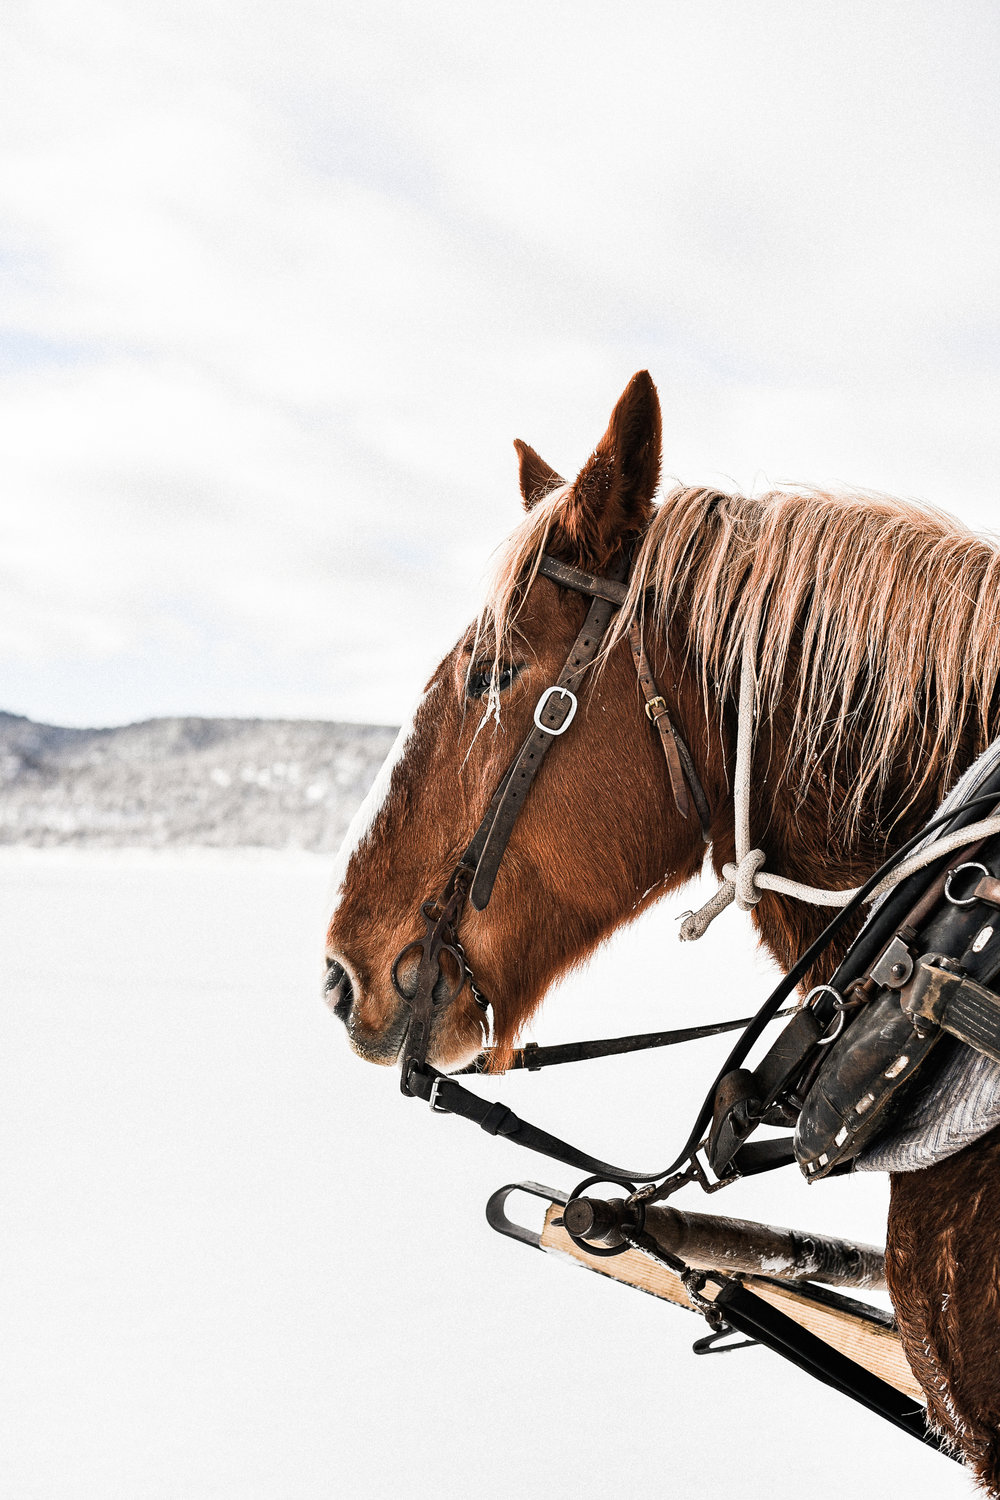 Winter Working Teamster Horse Cattle Ranch Equestrian Photography | boxwoodavenue.com